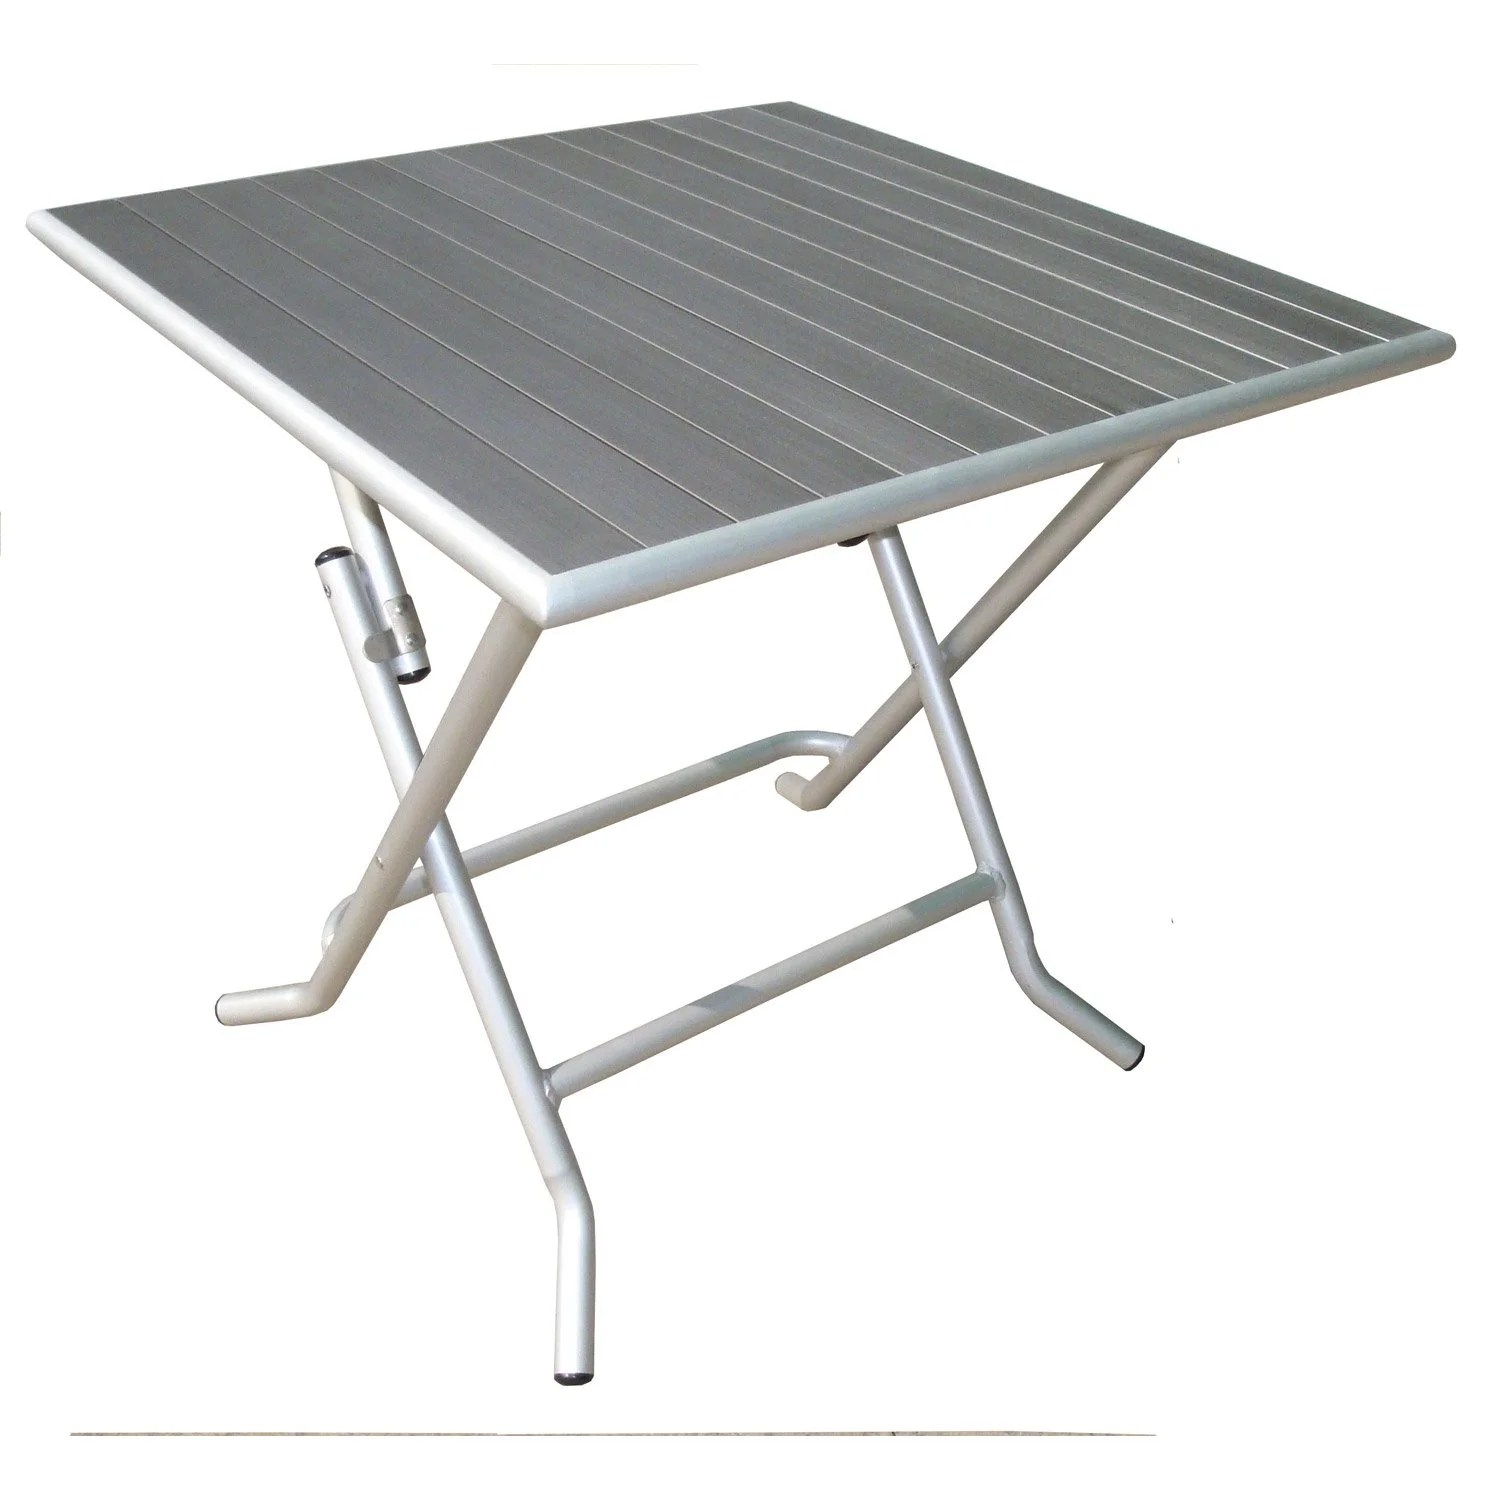 Table Fer Jardin Table De Jardin Naterial Boston Carrée Gris 4 Personnes